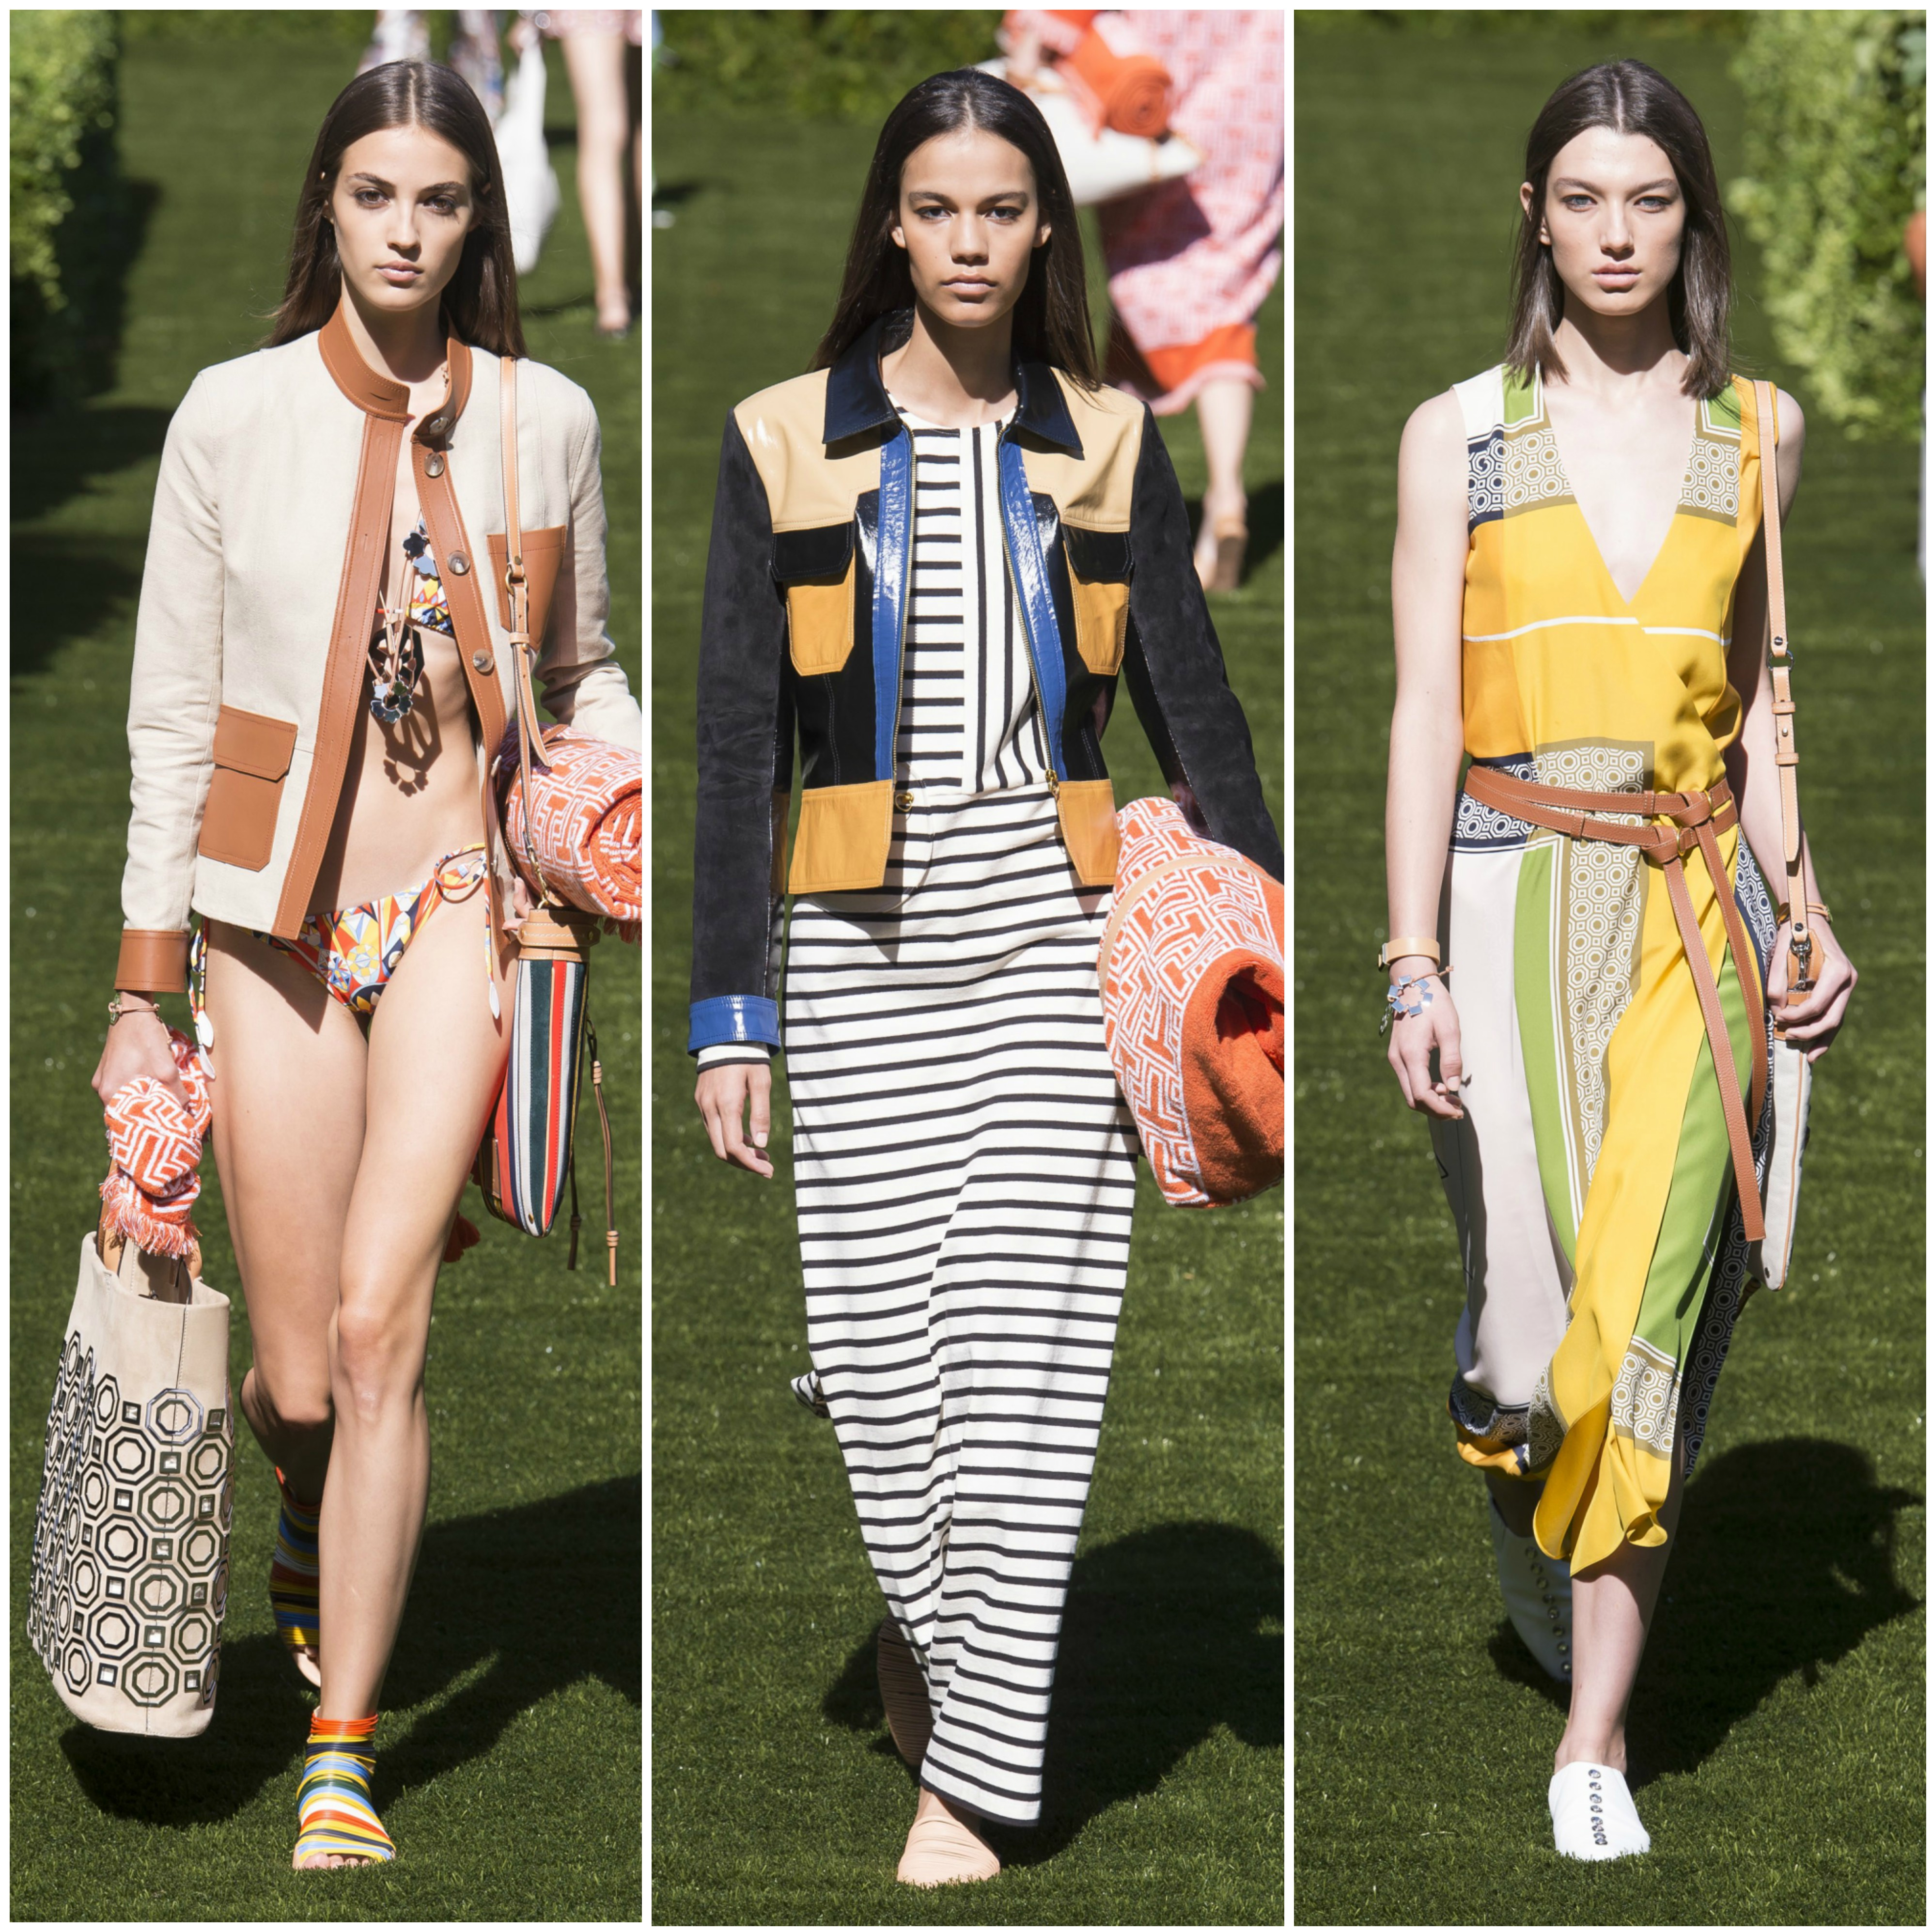 Spring 2018 from httpss://www.toryburch.com/, Dressed by Tia, report, Tia Stankova, runway, new colection